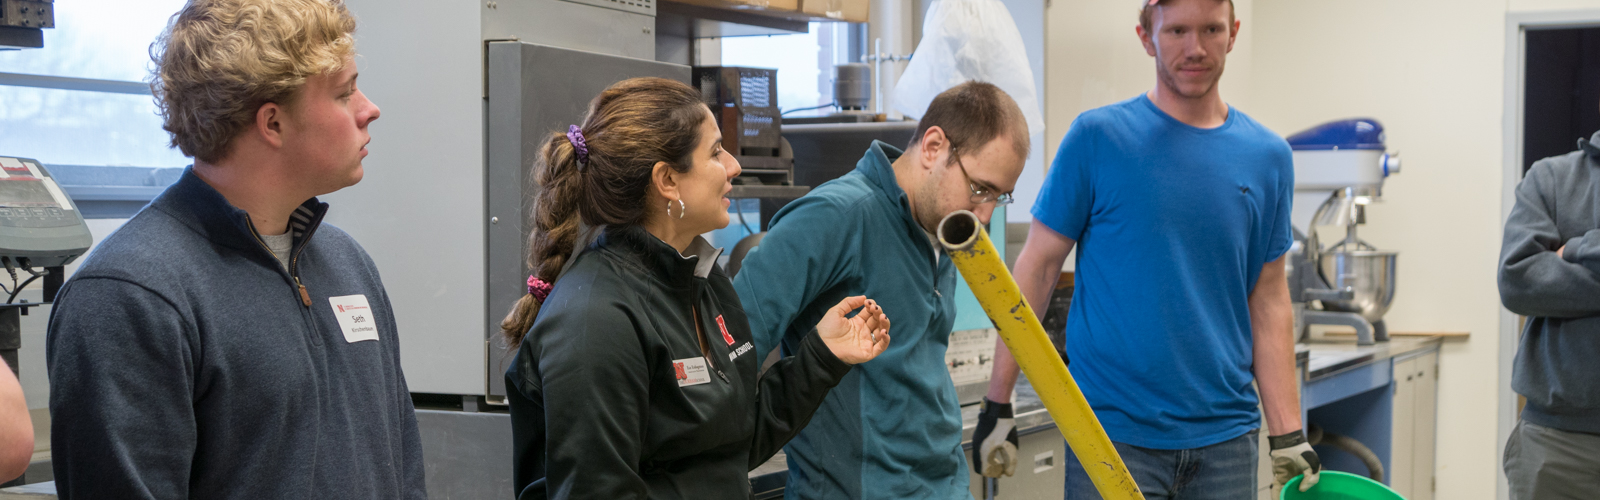 Admitted Student Day lab tour